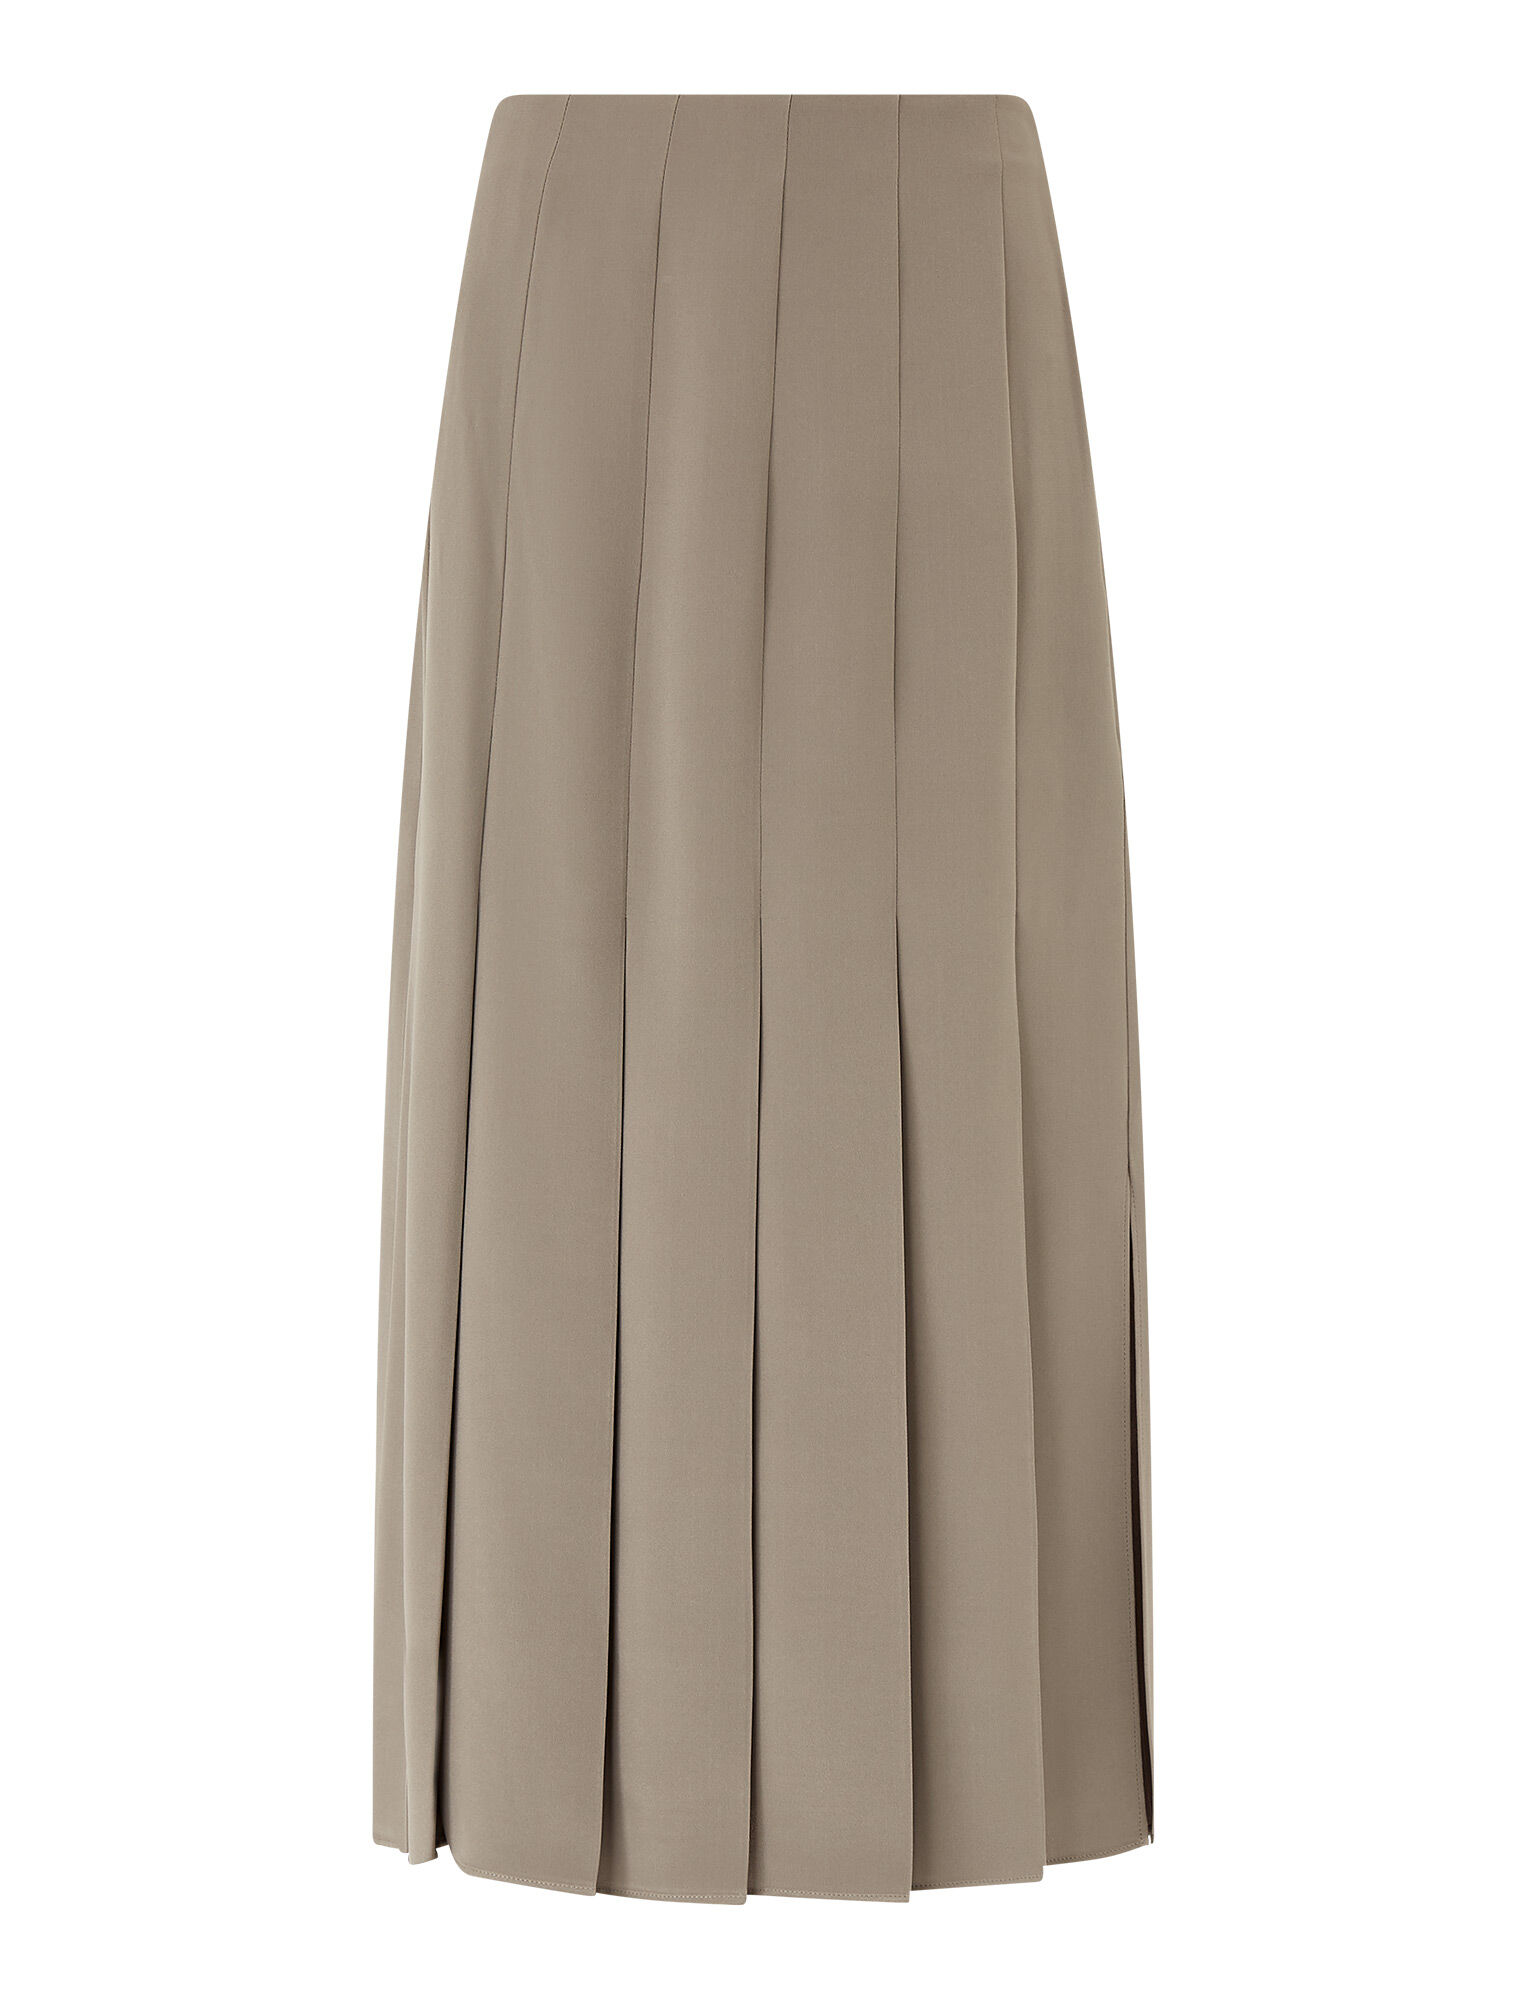 Joseph, Saria Heavy Silk Skirt, in Ash